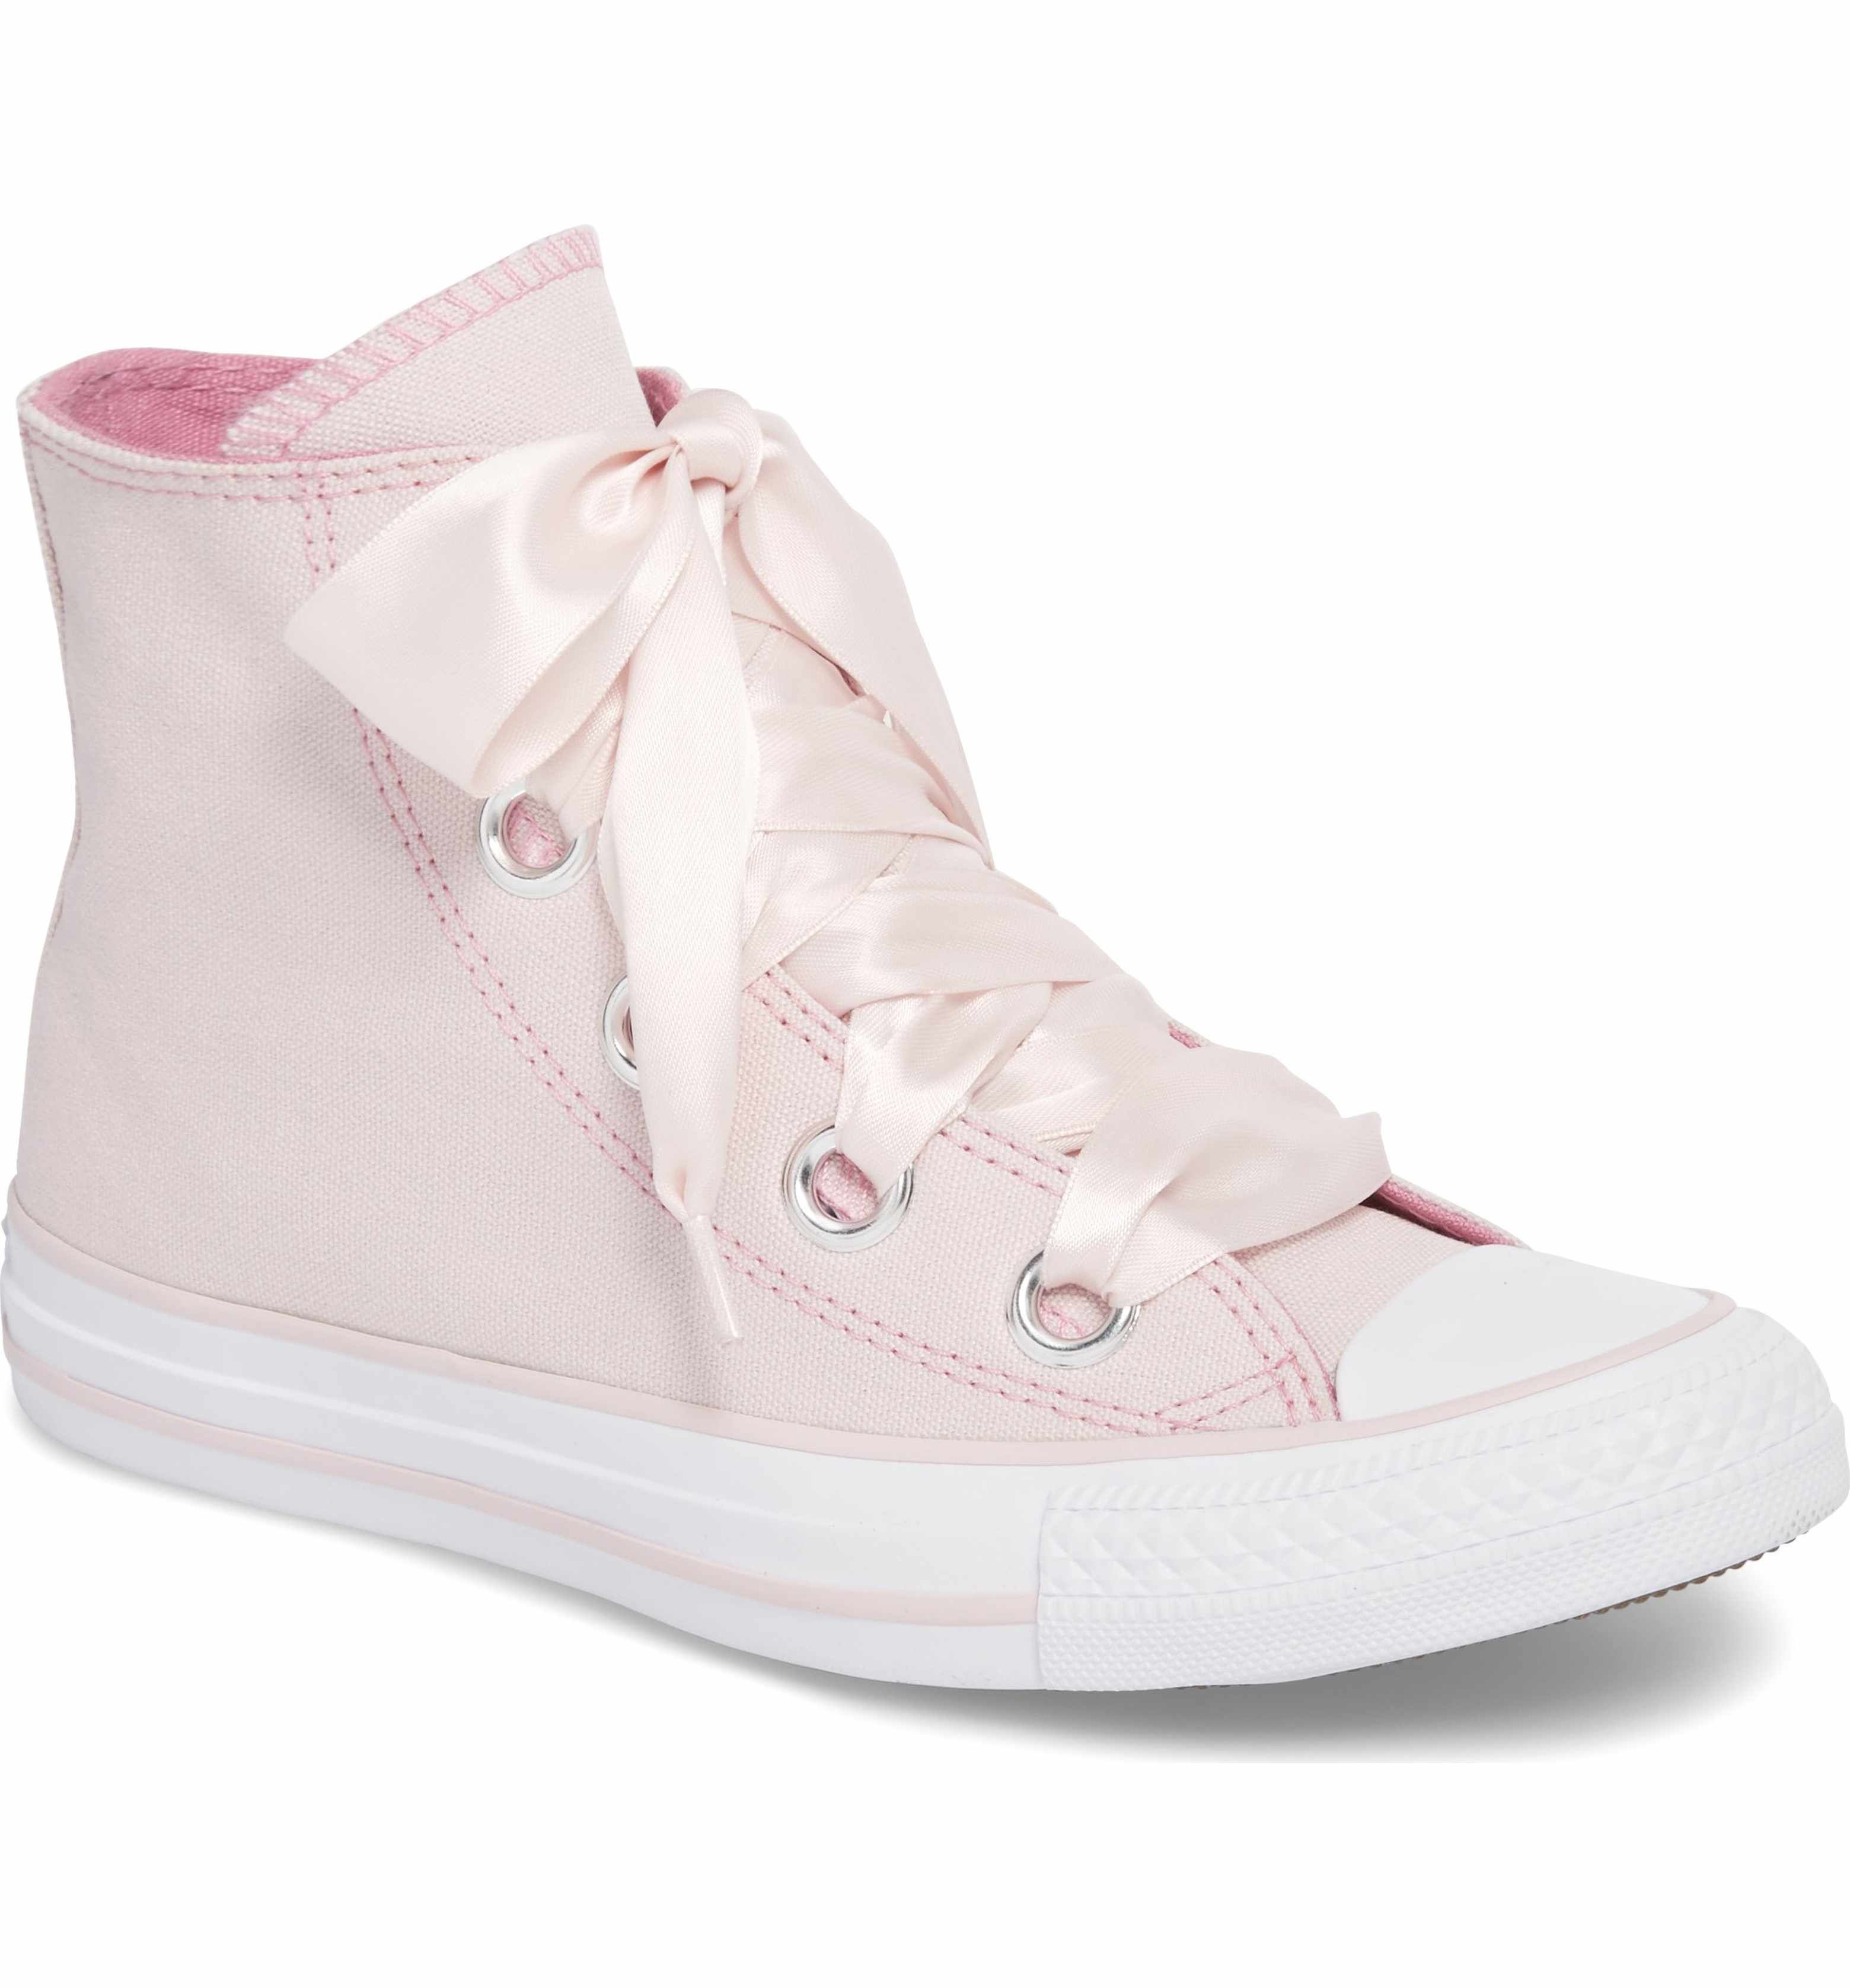 1f3217e1b5ae Main Image - Converse Chuck Taylor® All Star® Big Eyelet High Top Sneaker  (Women)